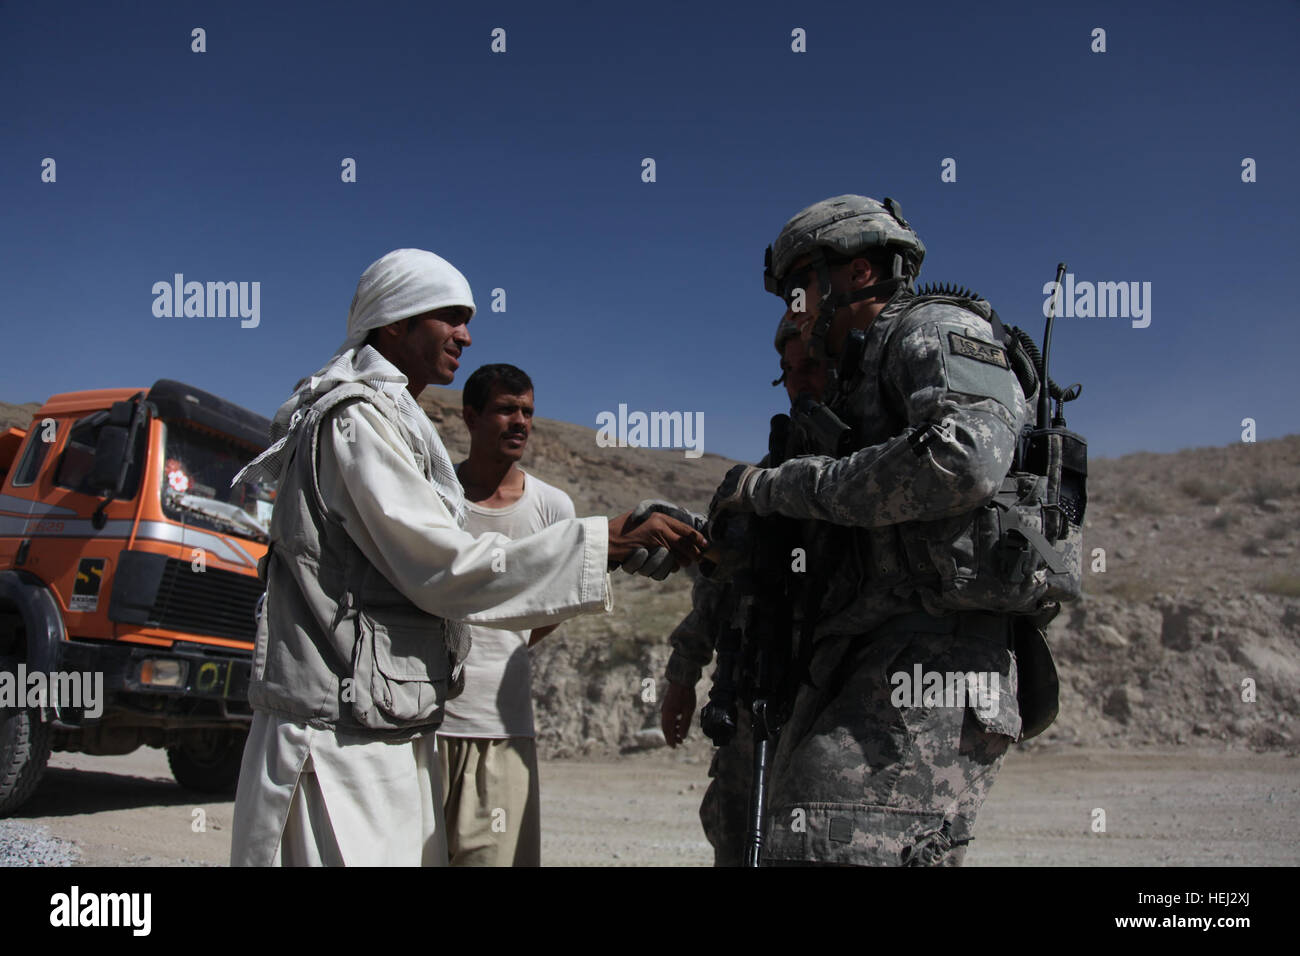 Afghanistan collegare sito